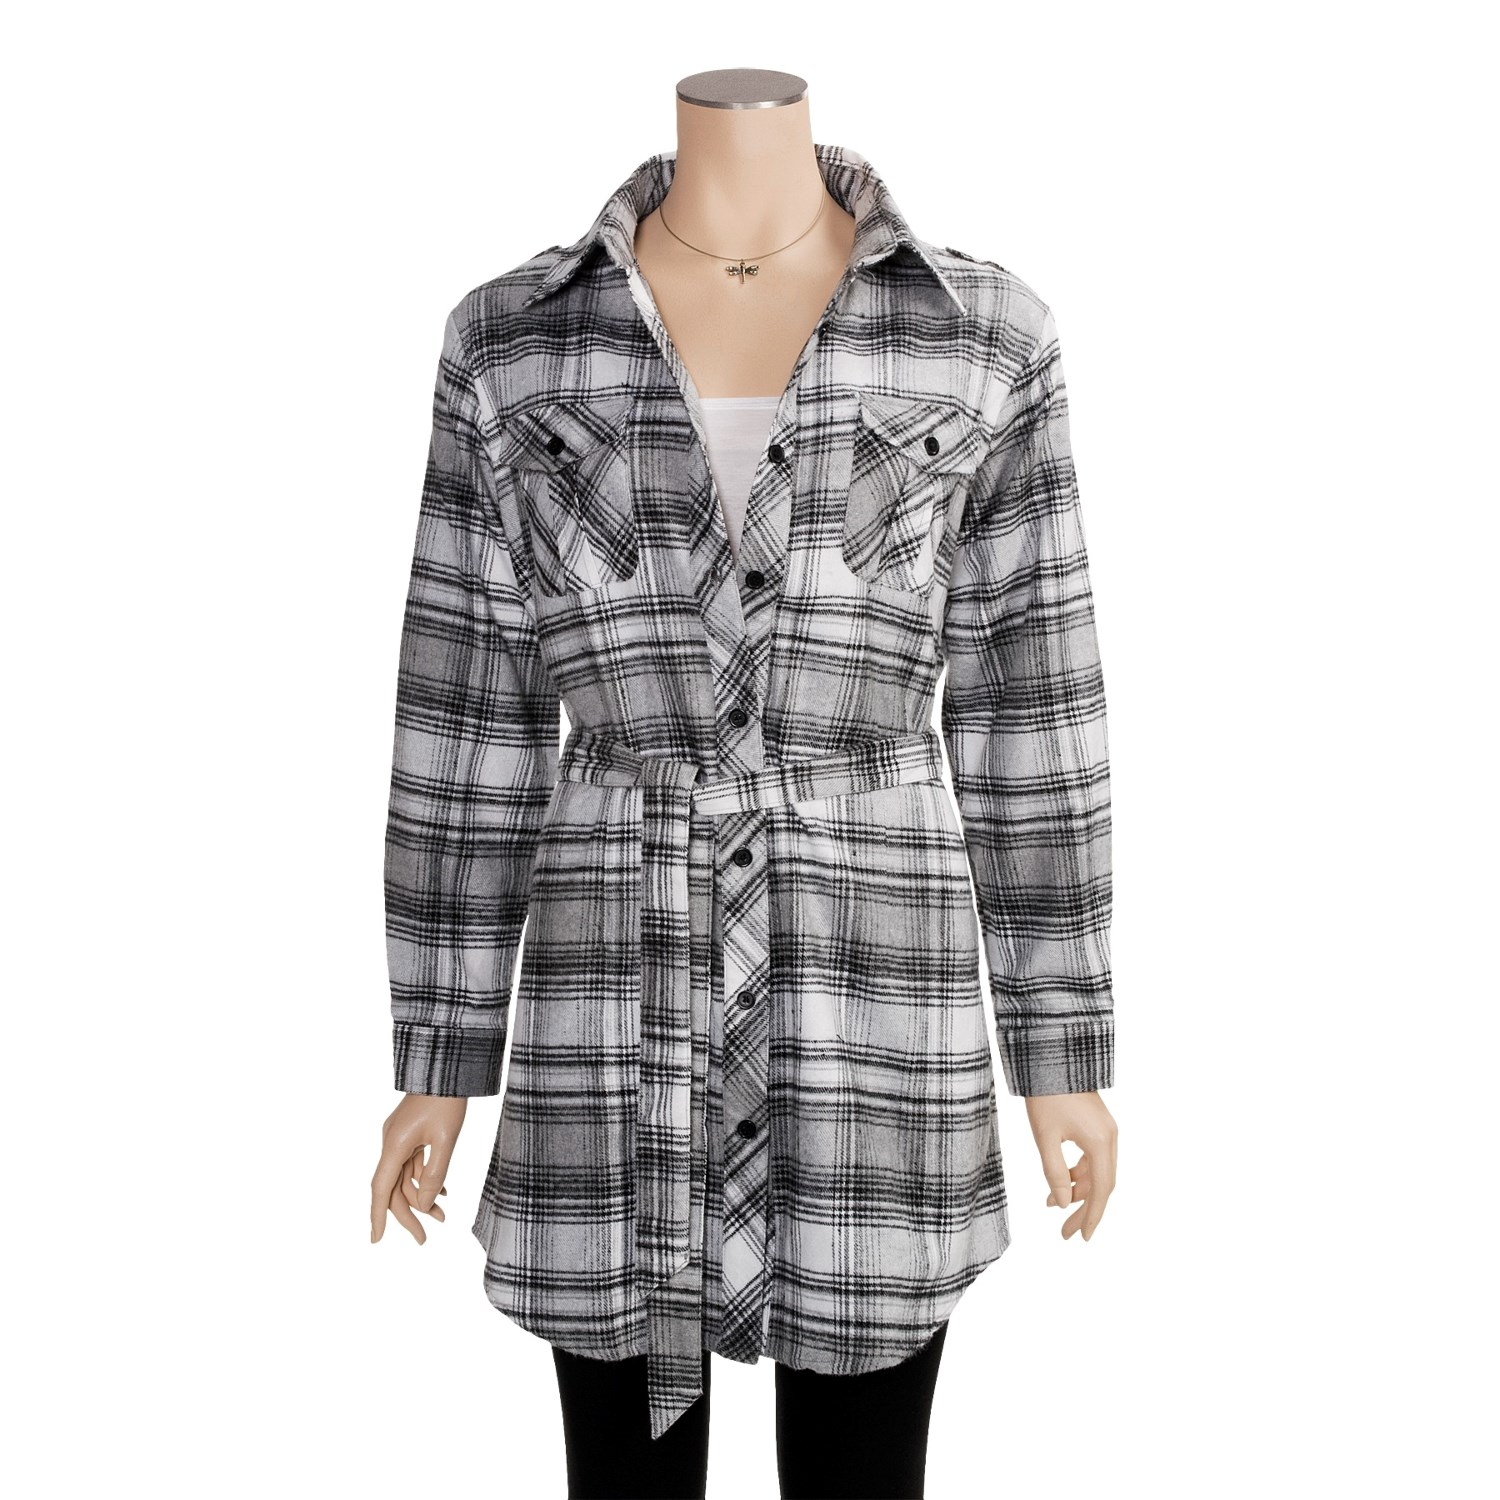 Plaid flannel button down tunic with long button tab sleeves and a ruffled hem. XS Sizes S/M Sizes L/XL Sizes XXL Sizes Plaid flannel button down tunic with long button tab .